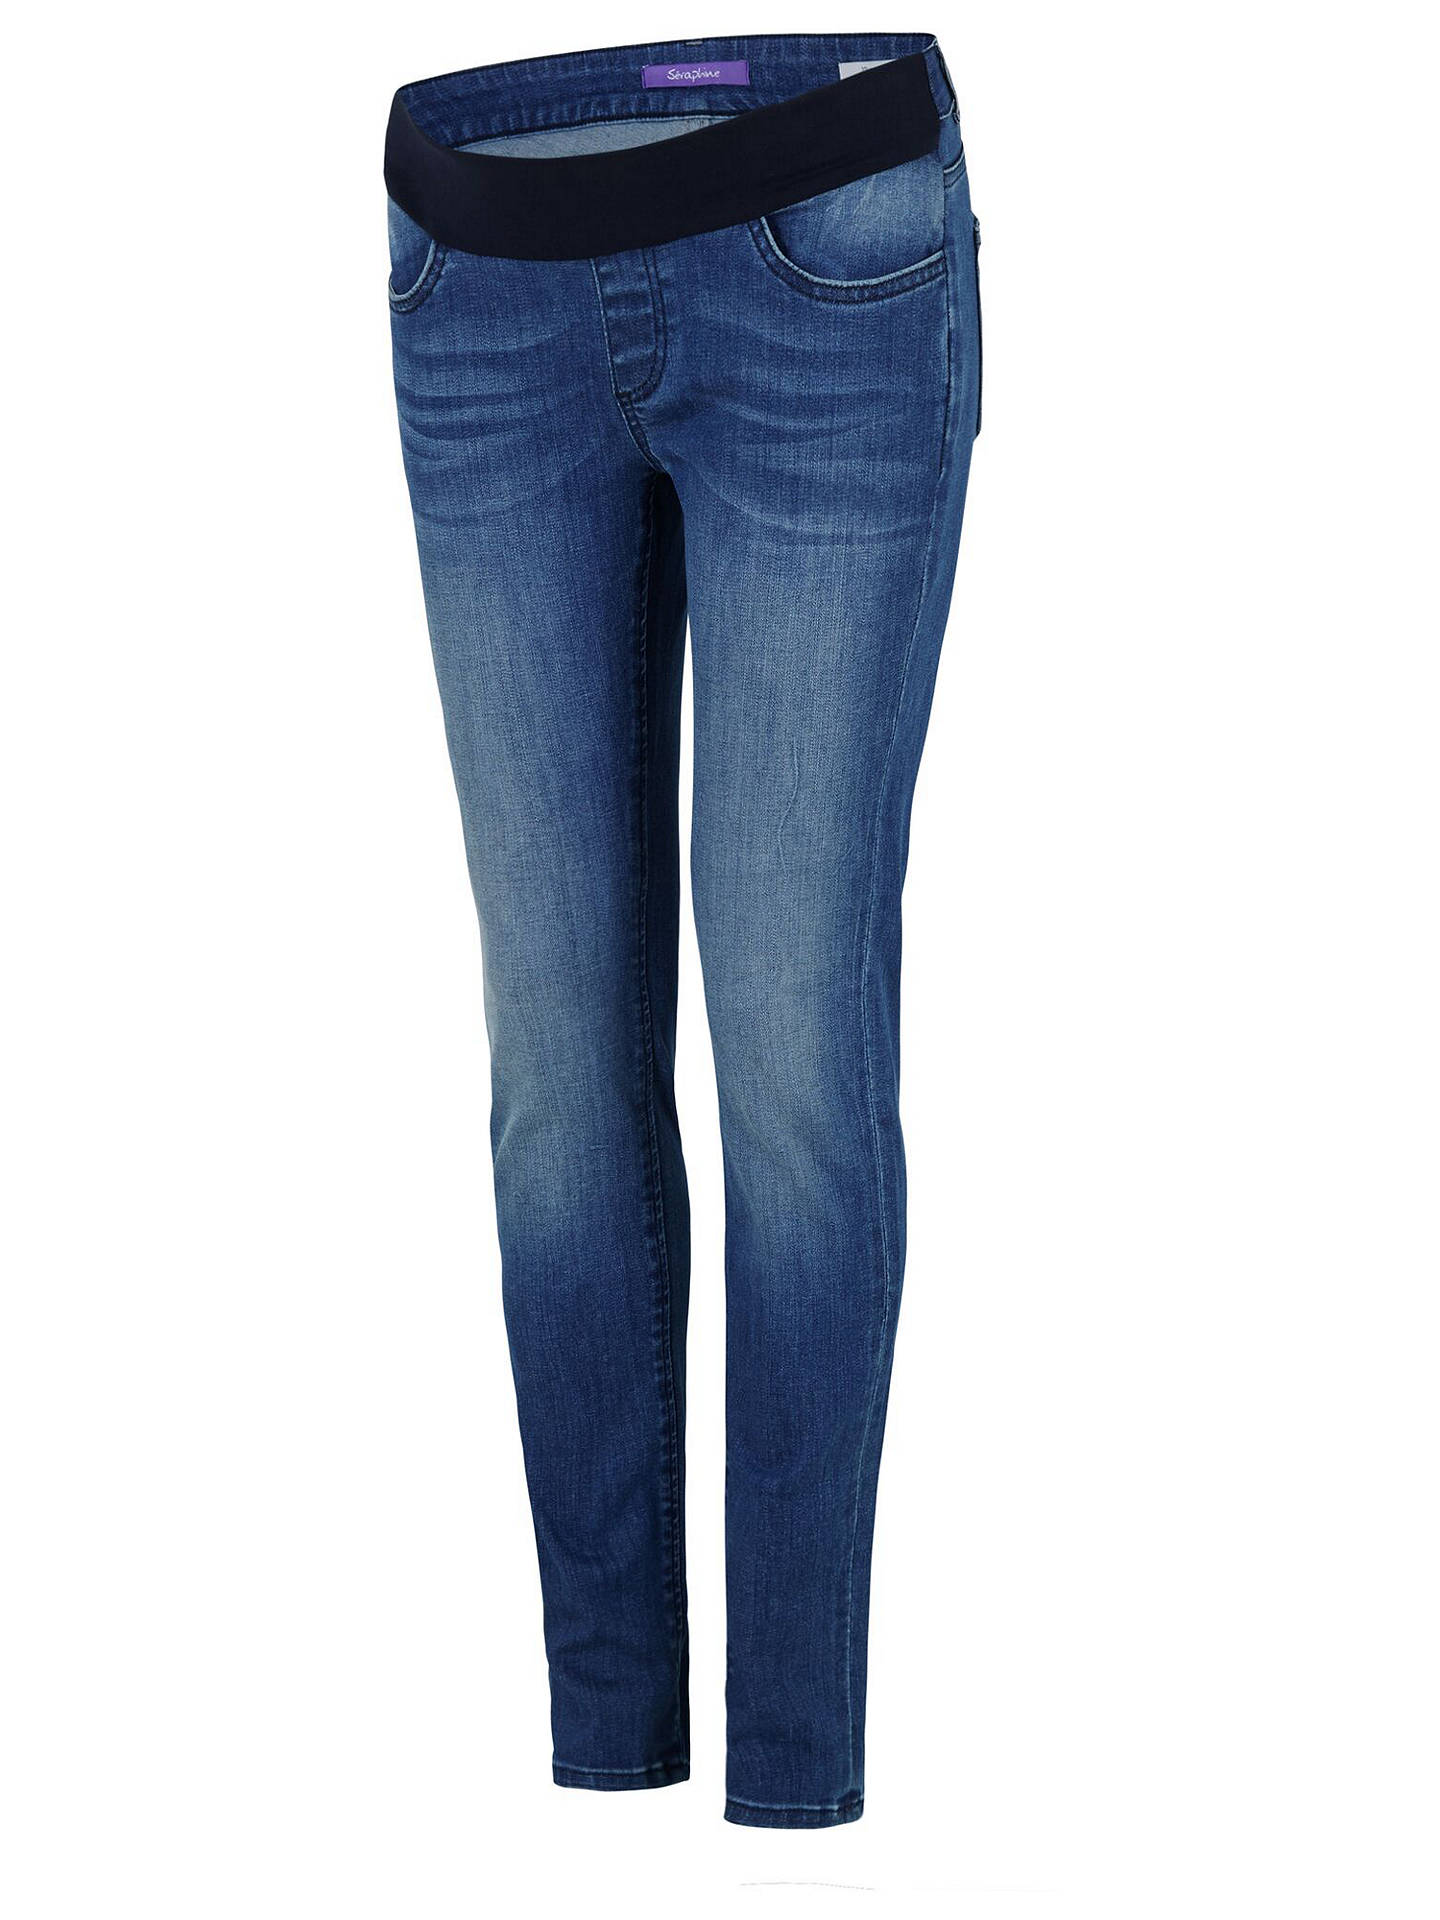 52d15a067eb87 Buy Seraphine Benton Overbump Maternity Slim Fit Jeans, Blue, 8 Online at  johnlewis.